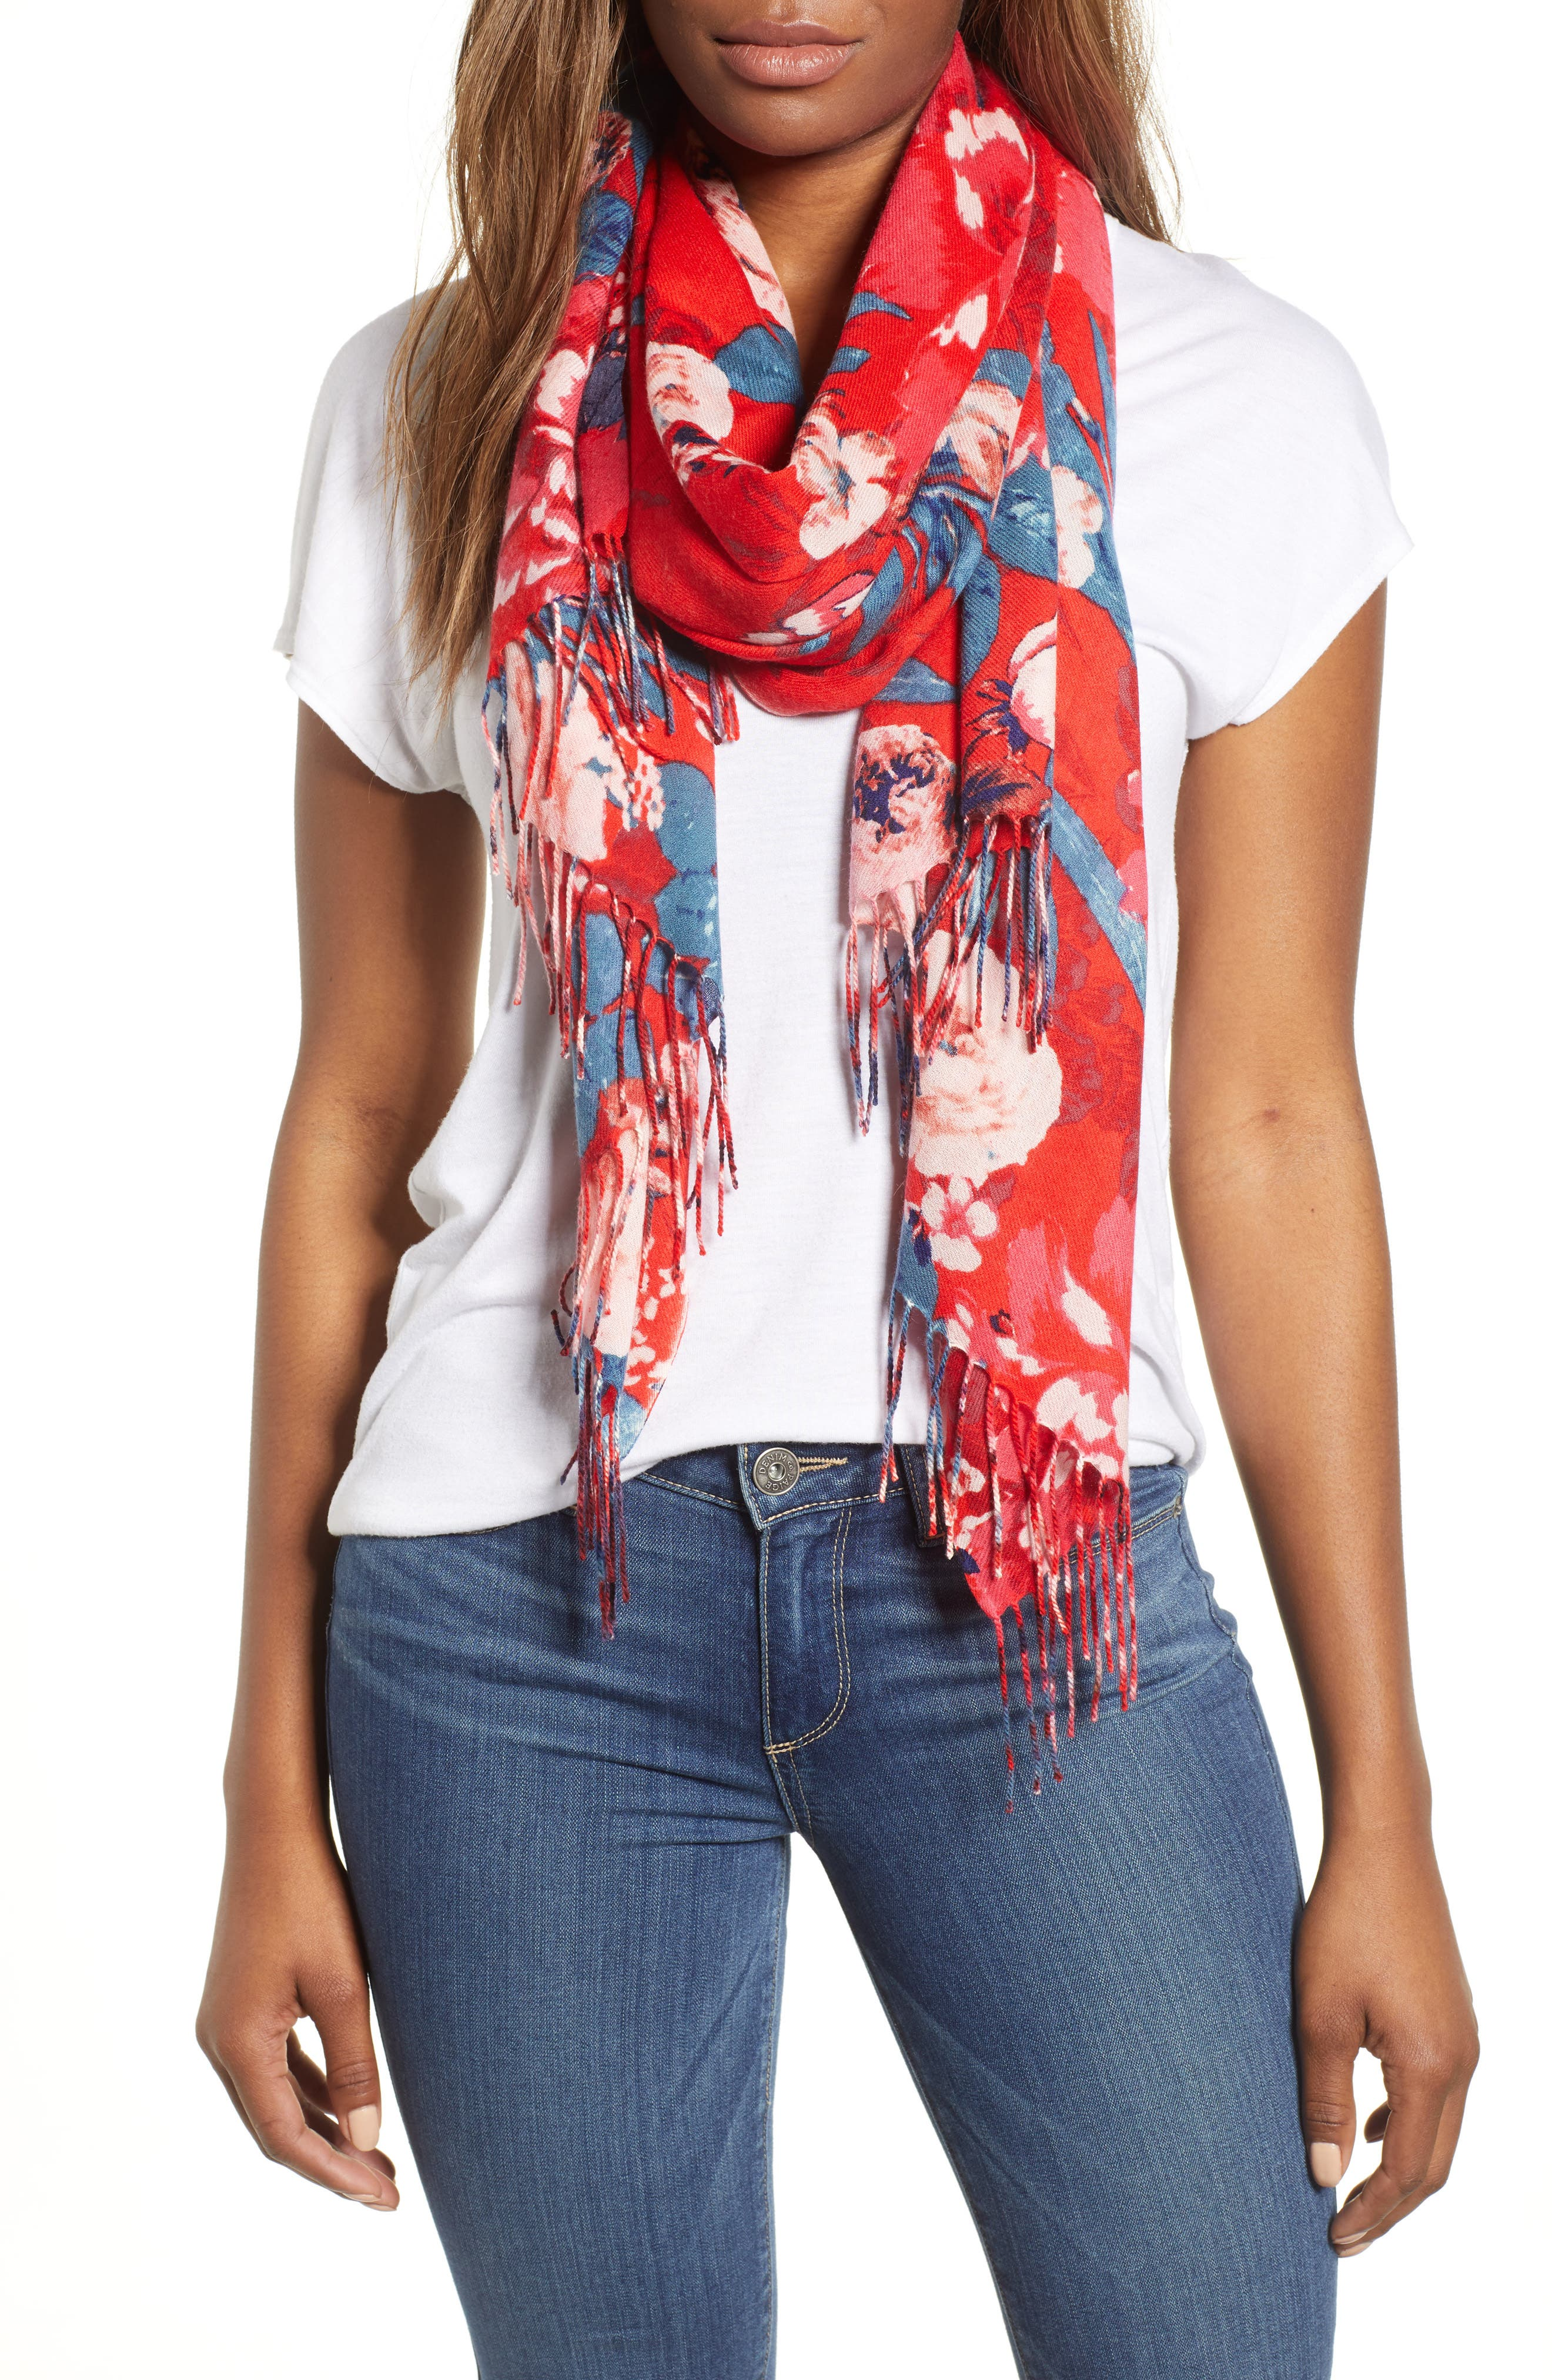 Tissue Print Wool & Cashmere Wrap Scarf,                             Main thumbnail 1, color,                             RED ARTFUL BLOOMS